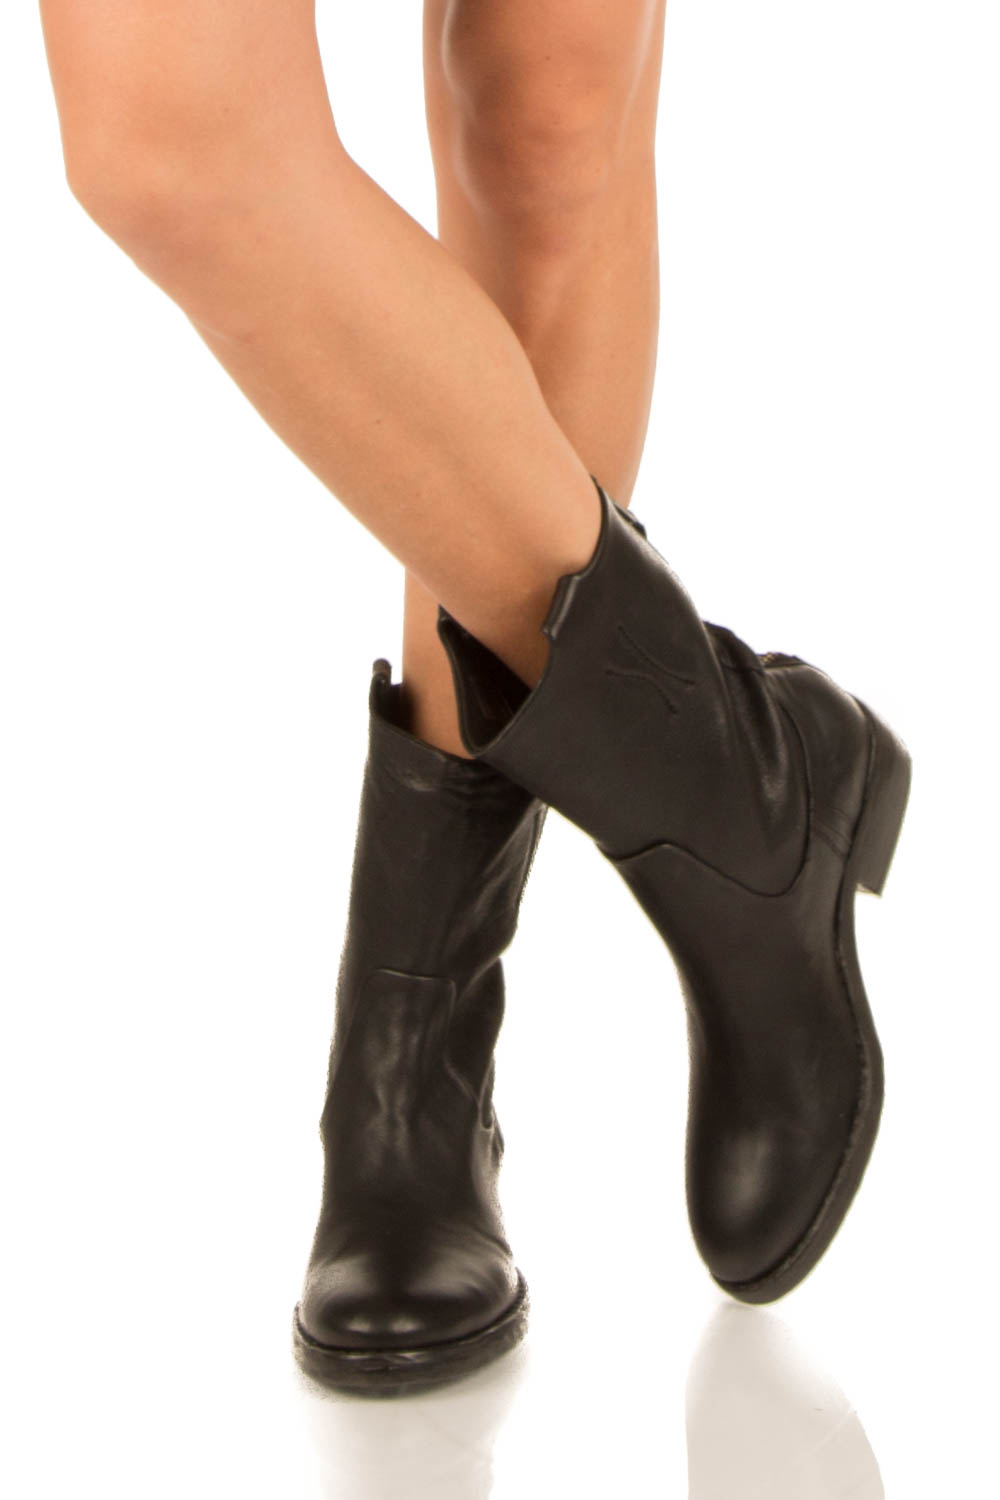 Catarina Martins Bottines Noir gOsFYGI9C